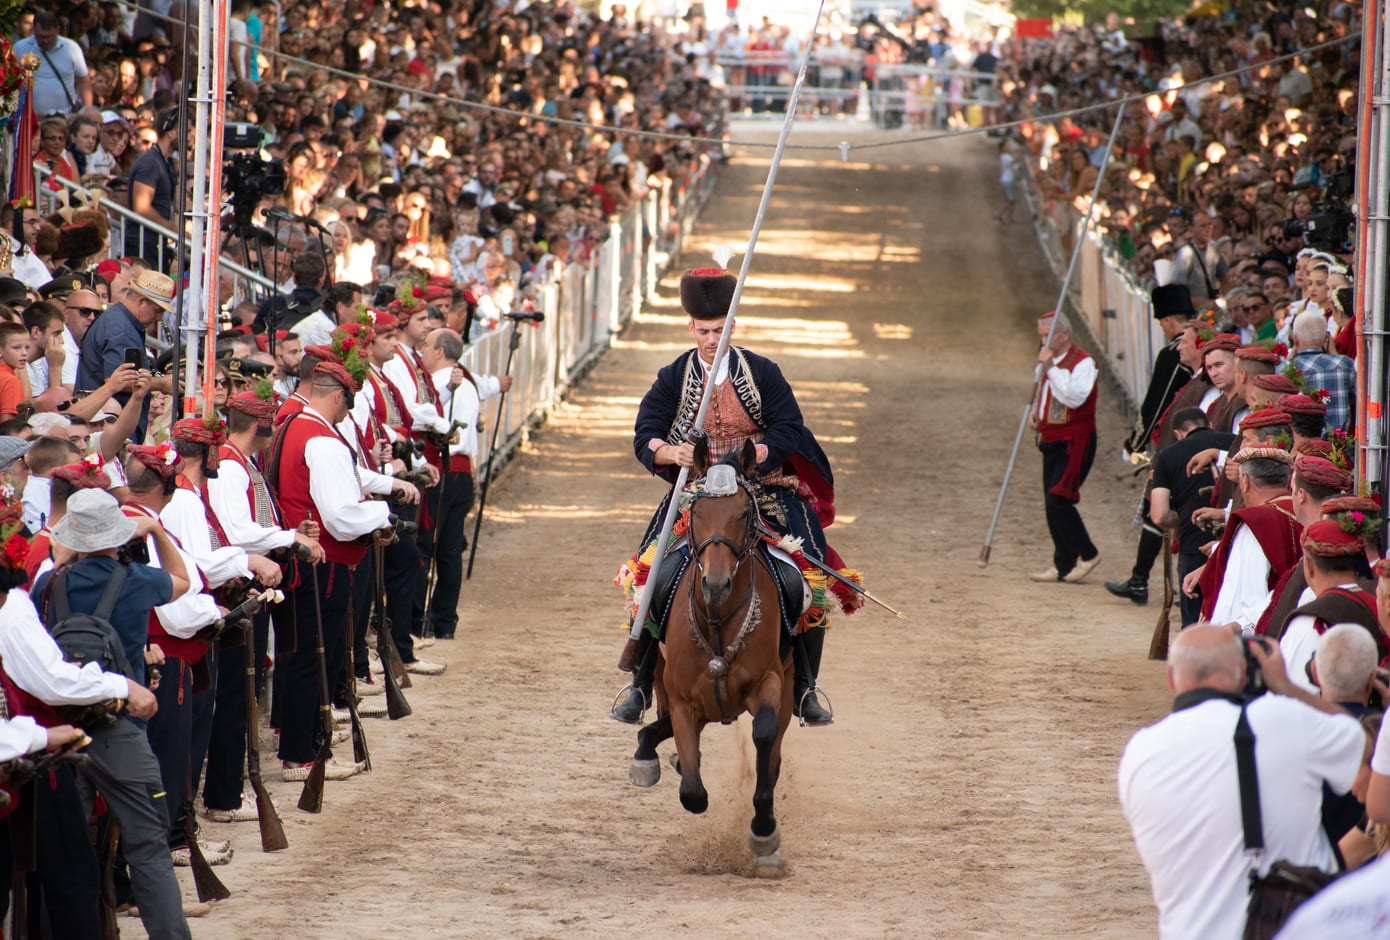 Alkar on his decorated horse galloping, hitting the metal ring  with his spear during Sinjska Alka, tournament, in Sinj